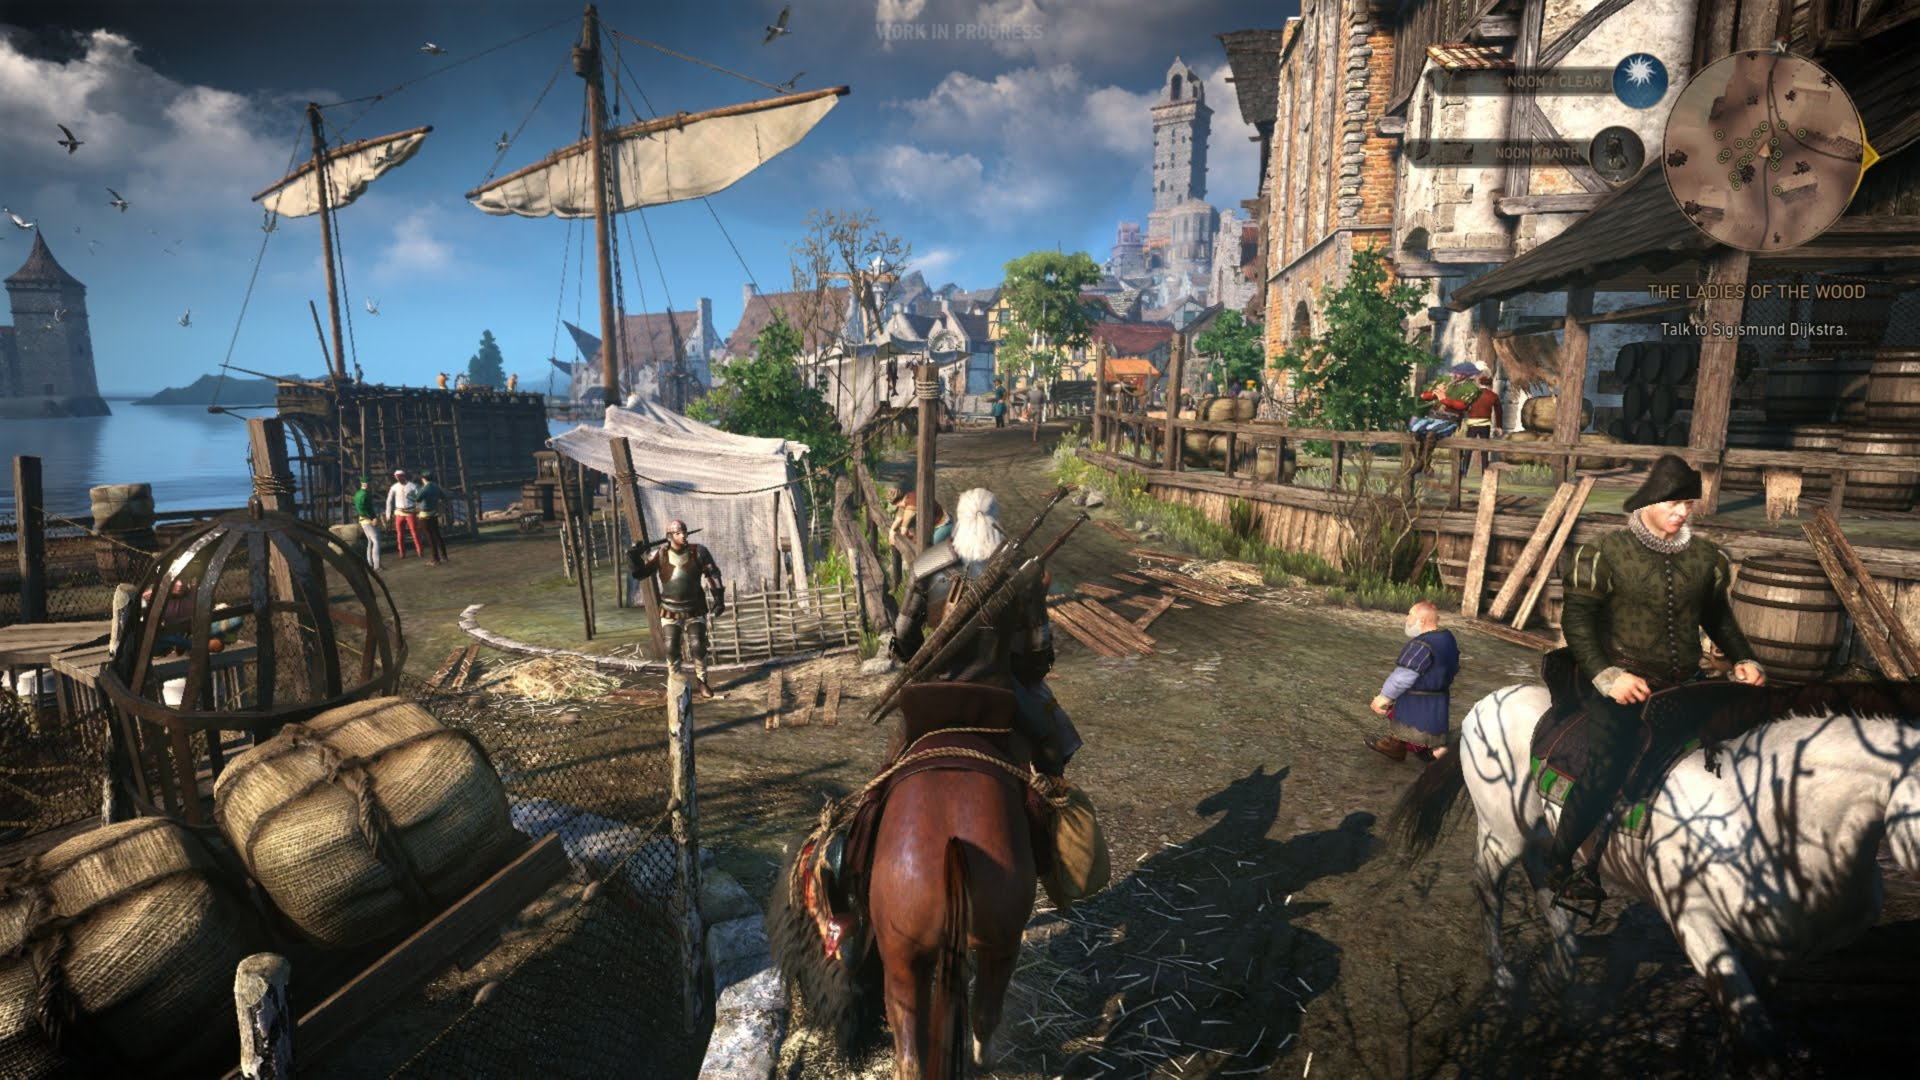 35 Minuten Gameplay Video zu The Witcher 3 Wild Hunt